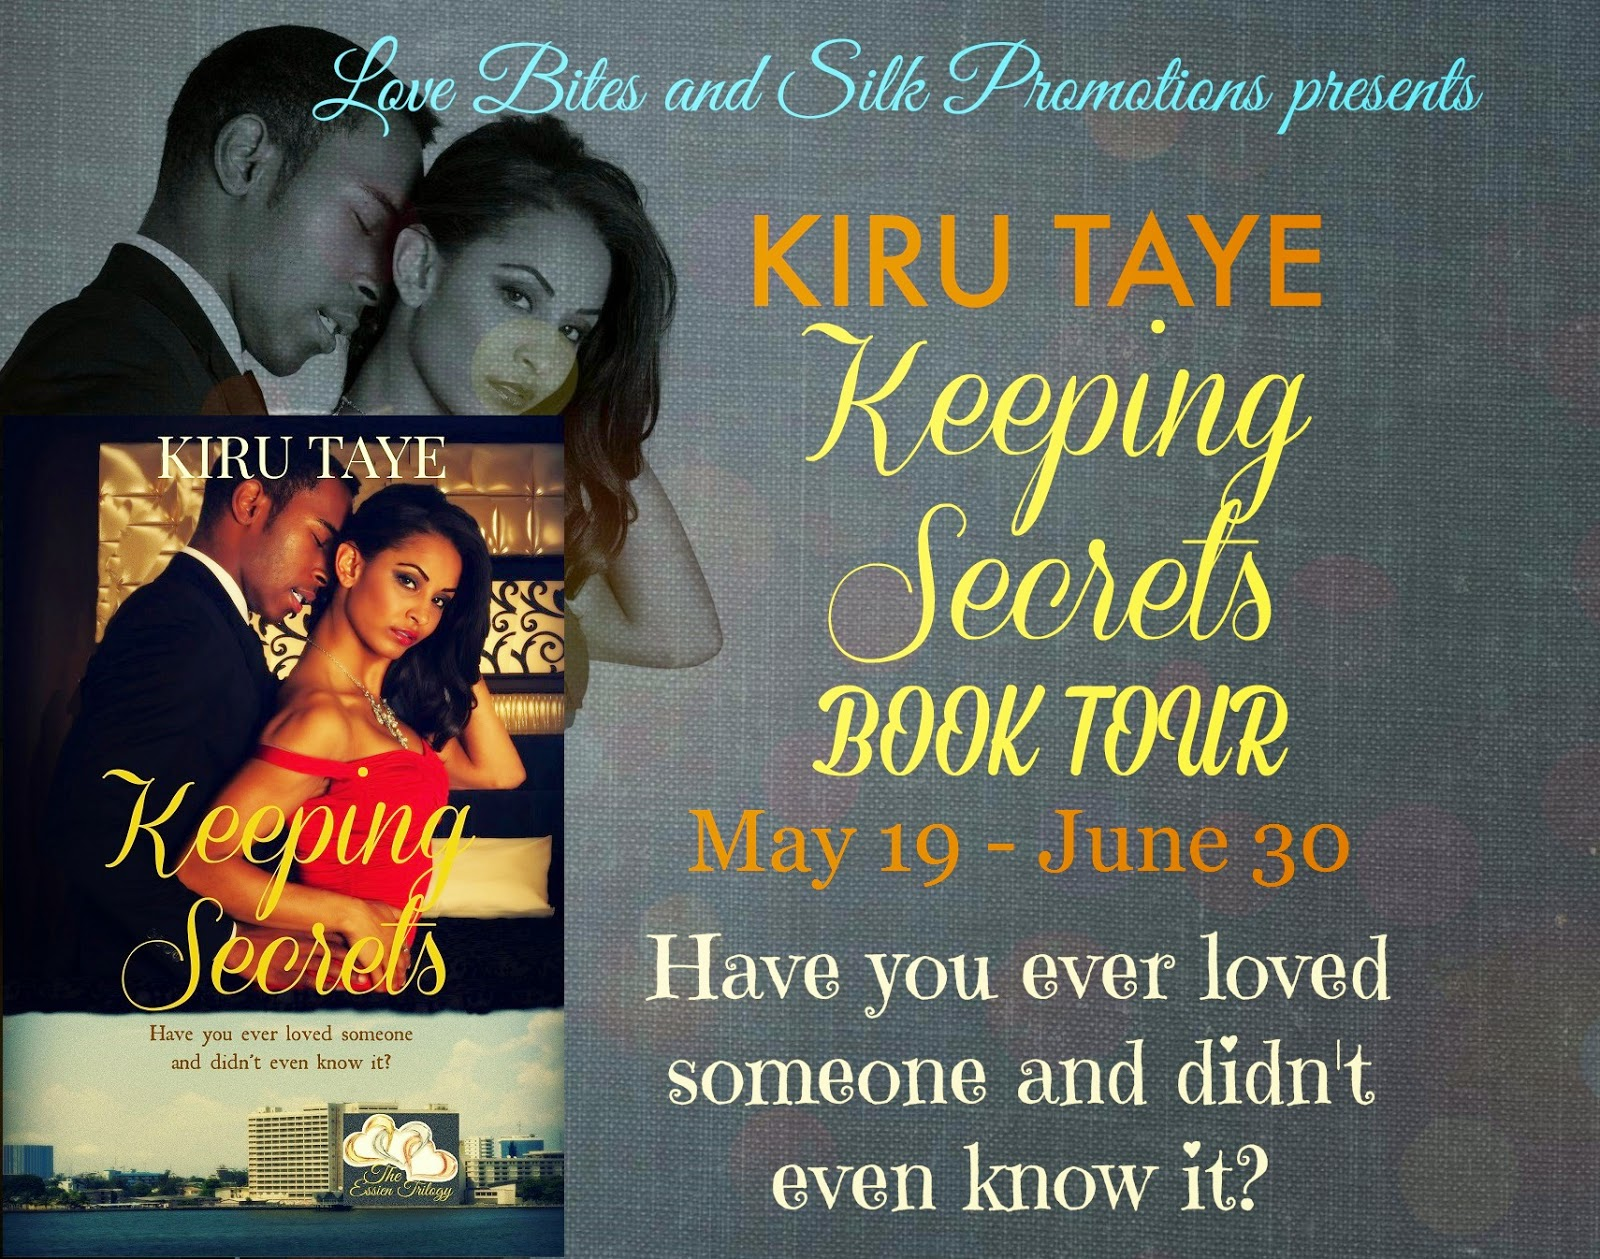 Keeping Secrets In A Relationship Quotes: Flirty & Feisty Romance Blog...spice Up Your Relationships